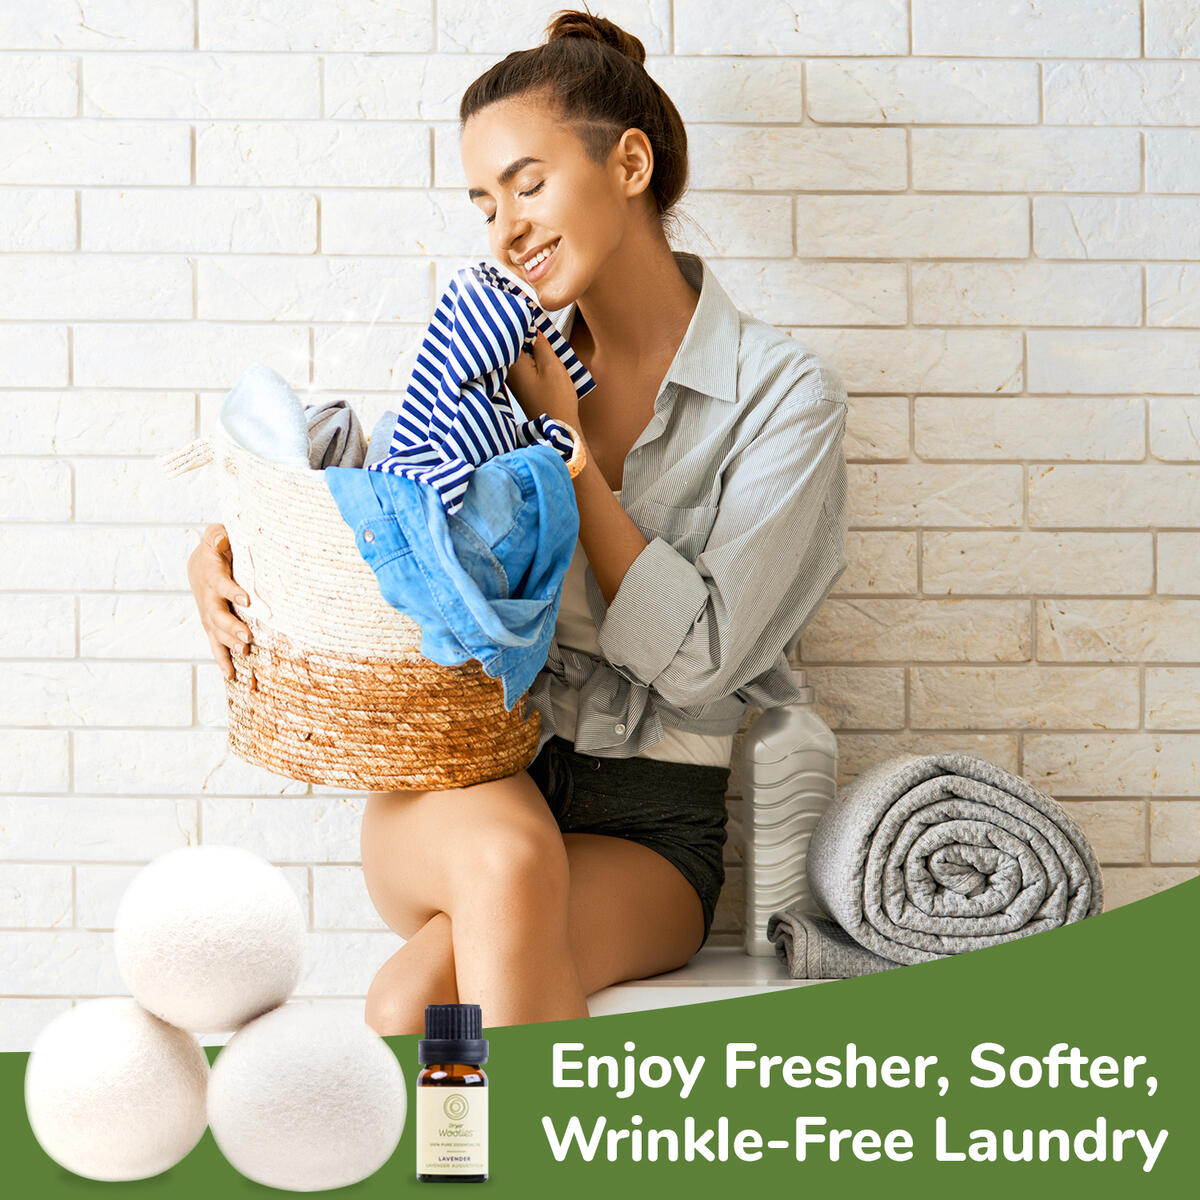 Dryer Woolies - Wool Dryer Balls (3 Pack) Reusable Organic Fabric Softener and Dryer Sheets Alternative Laundry Balls, Reduce Clothing Wrinkles and Drying Time